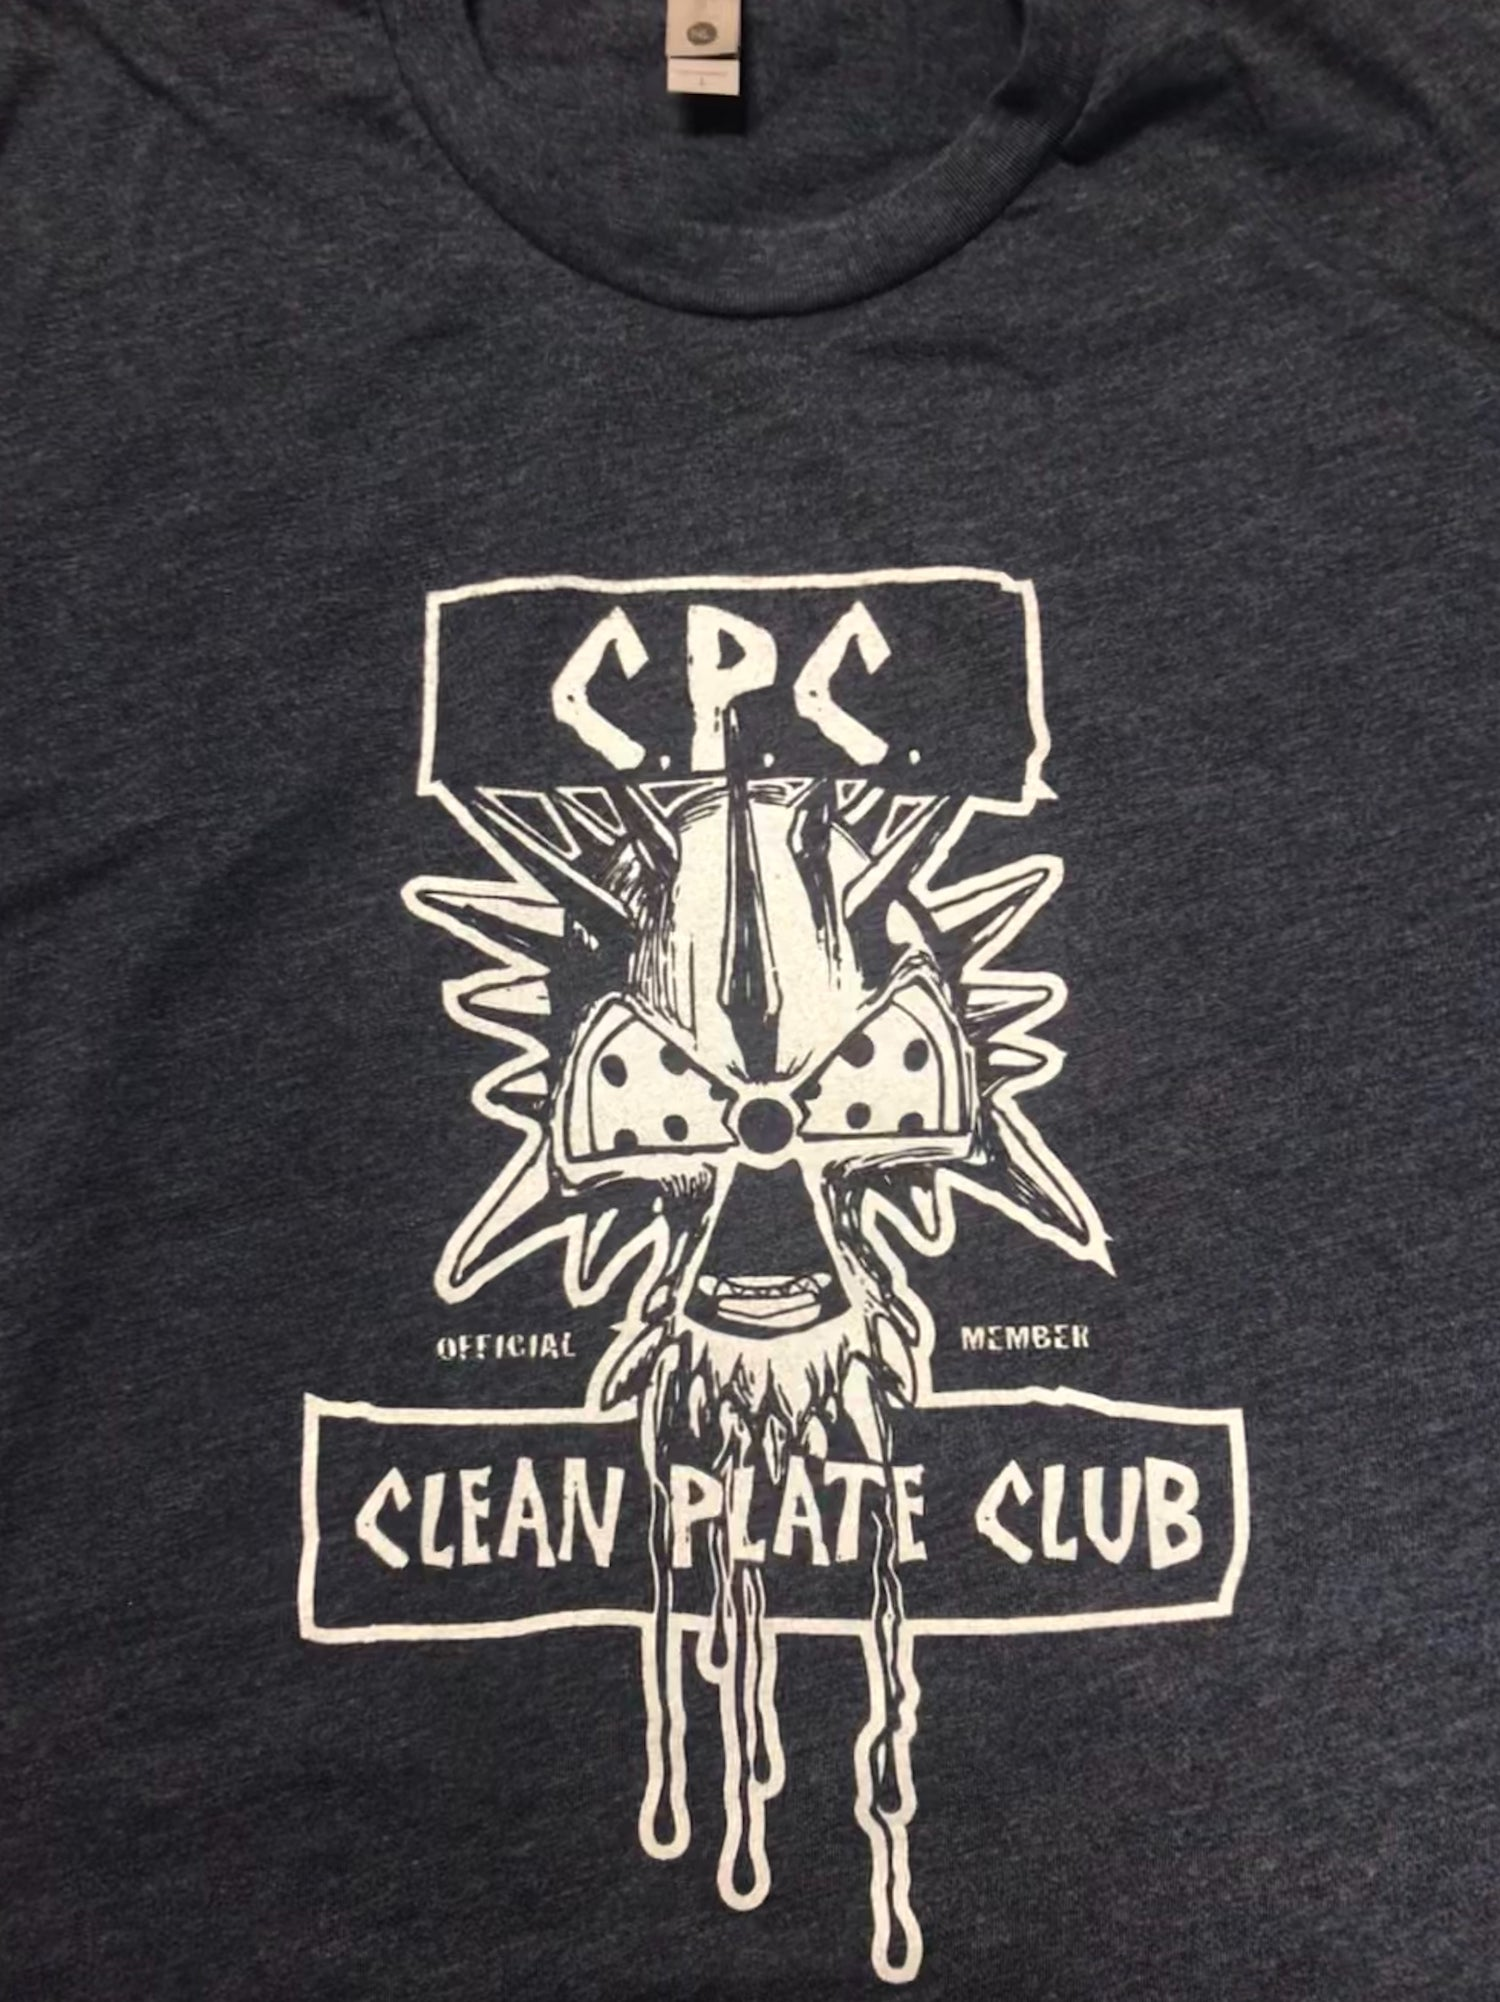 Image of CPC Clean Plate Club Official Member